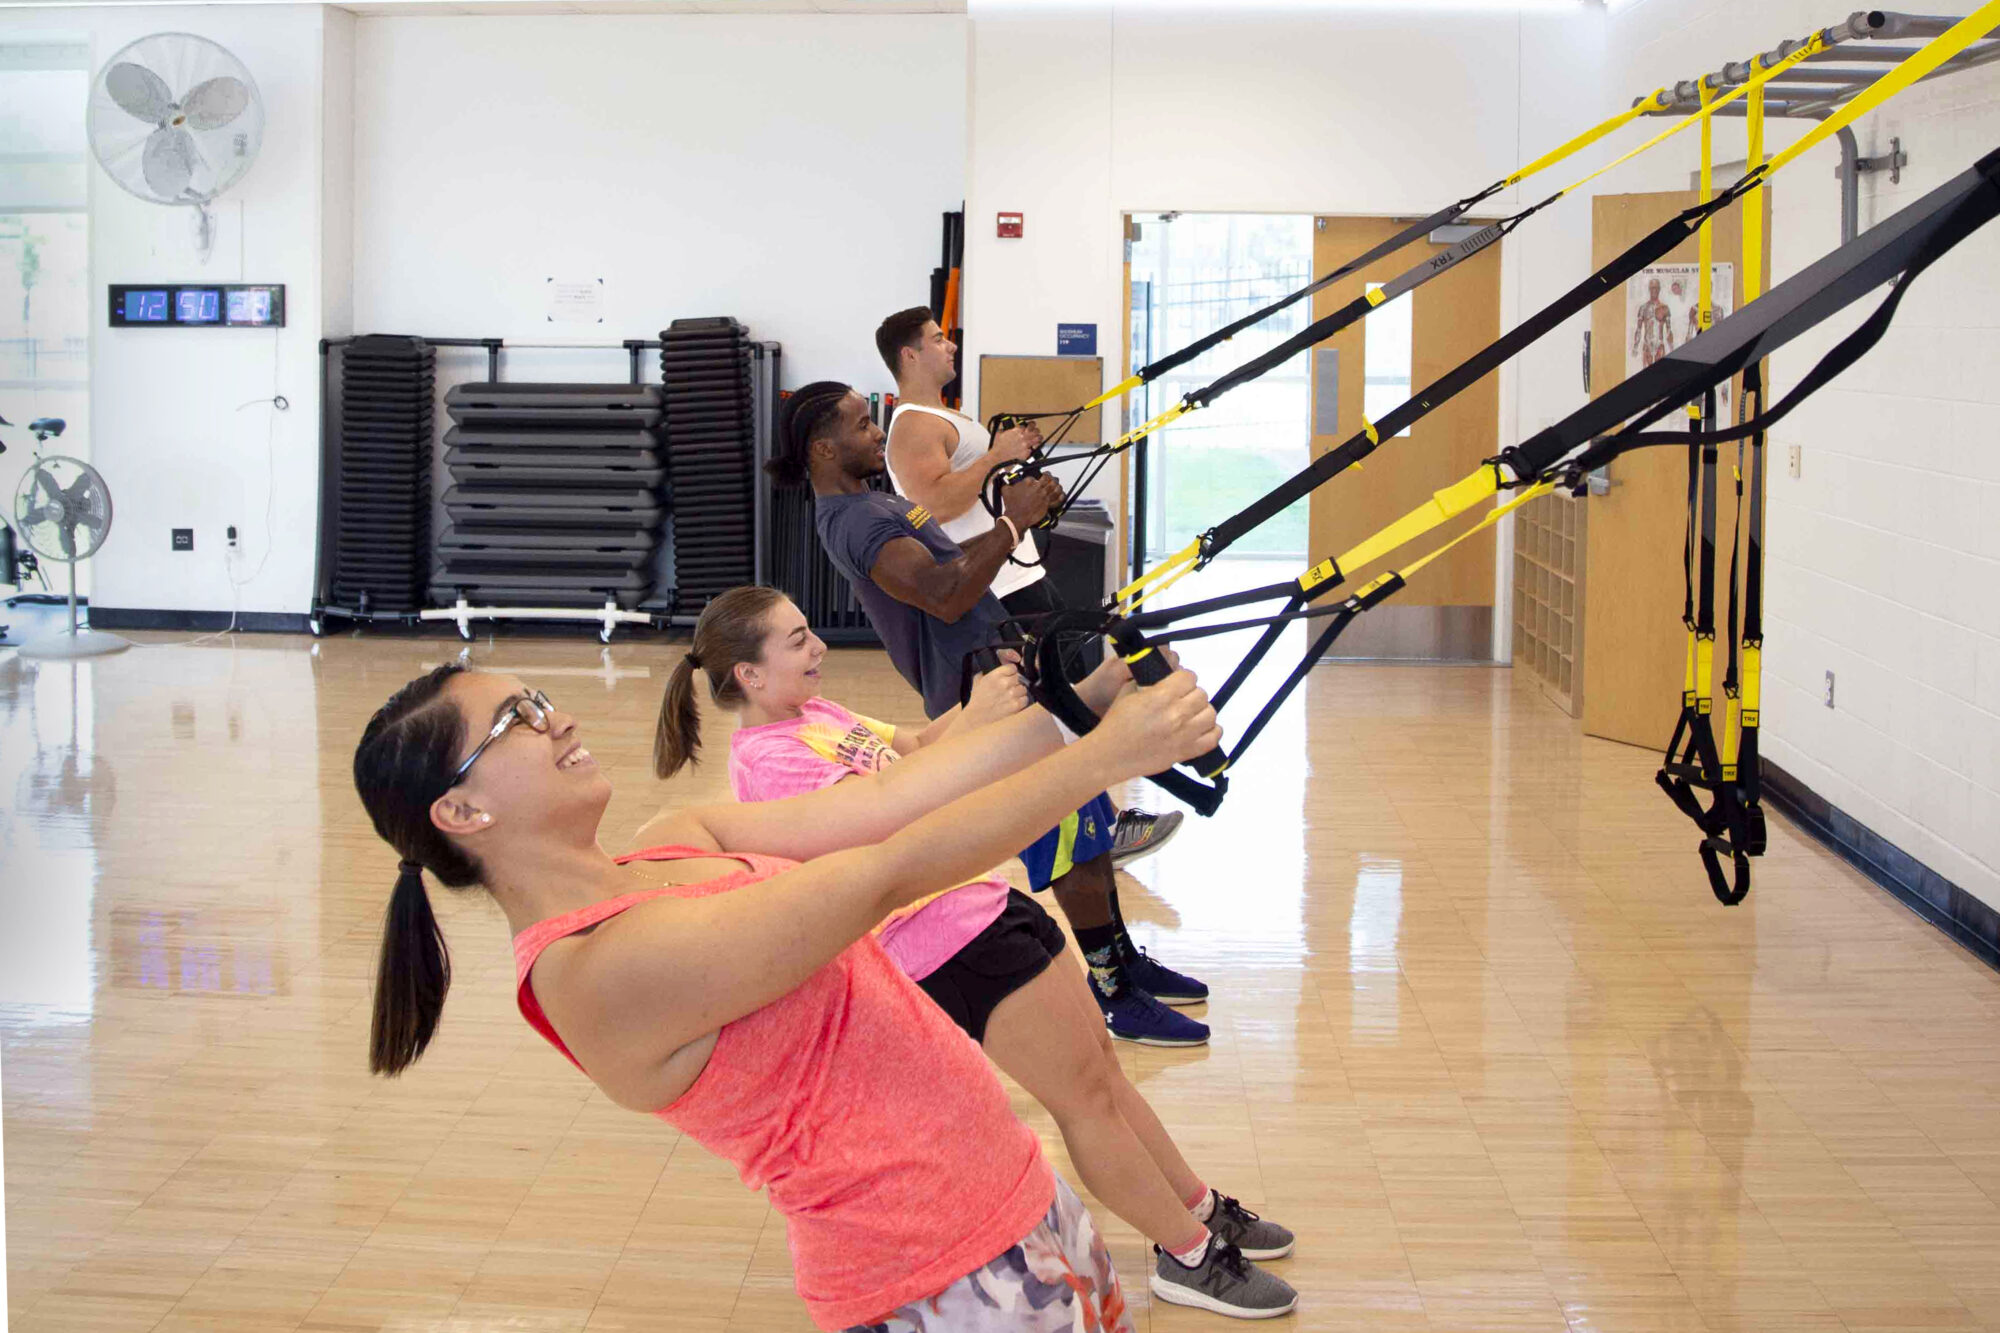 Students exercising using TRX bands during a group fitness class in the Activity Room.